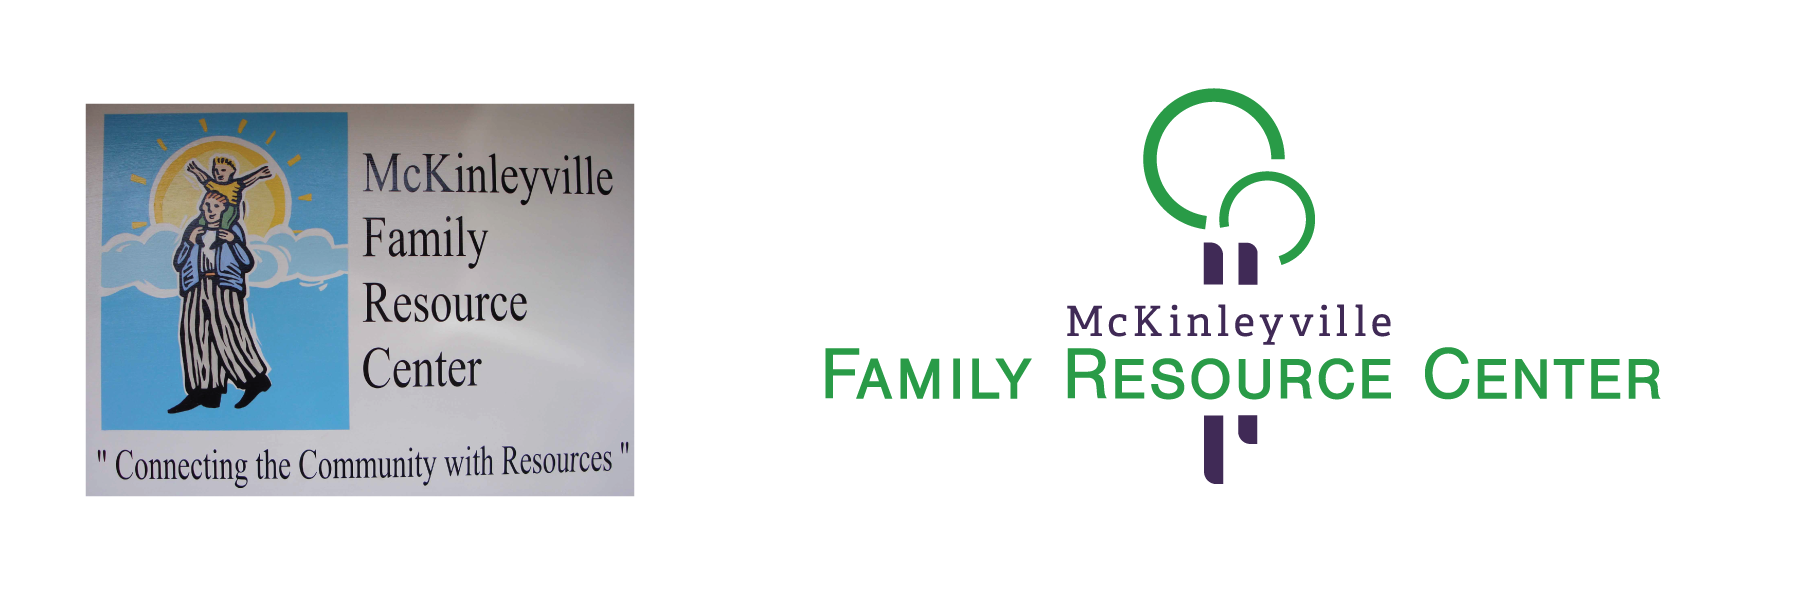 Logo comparison for McKinleyville Family Resource Center